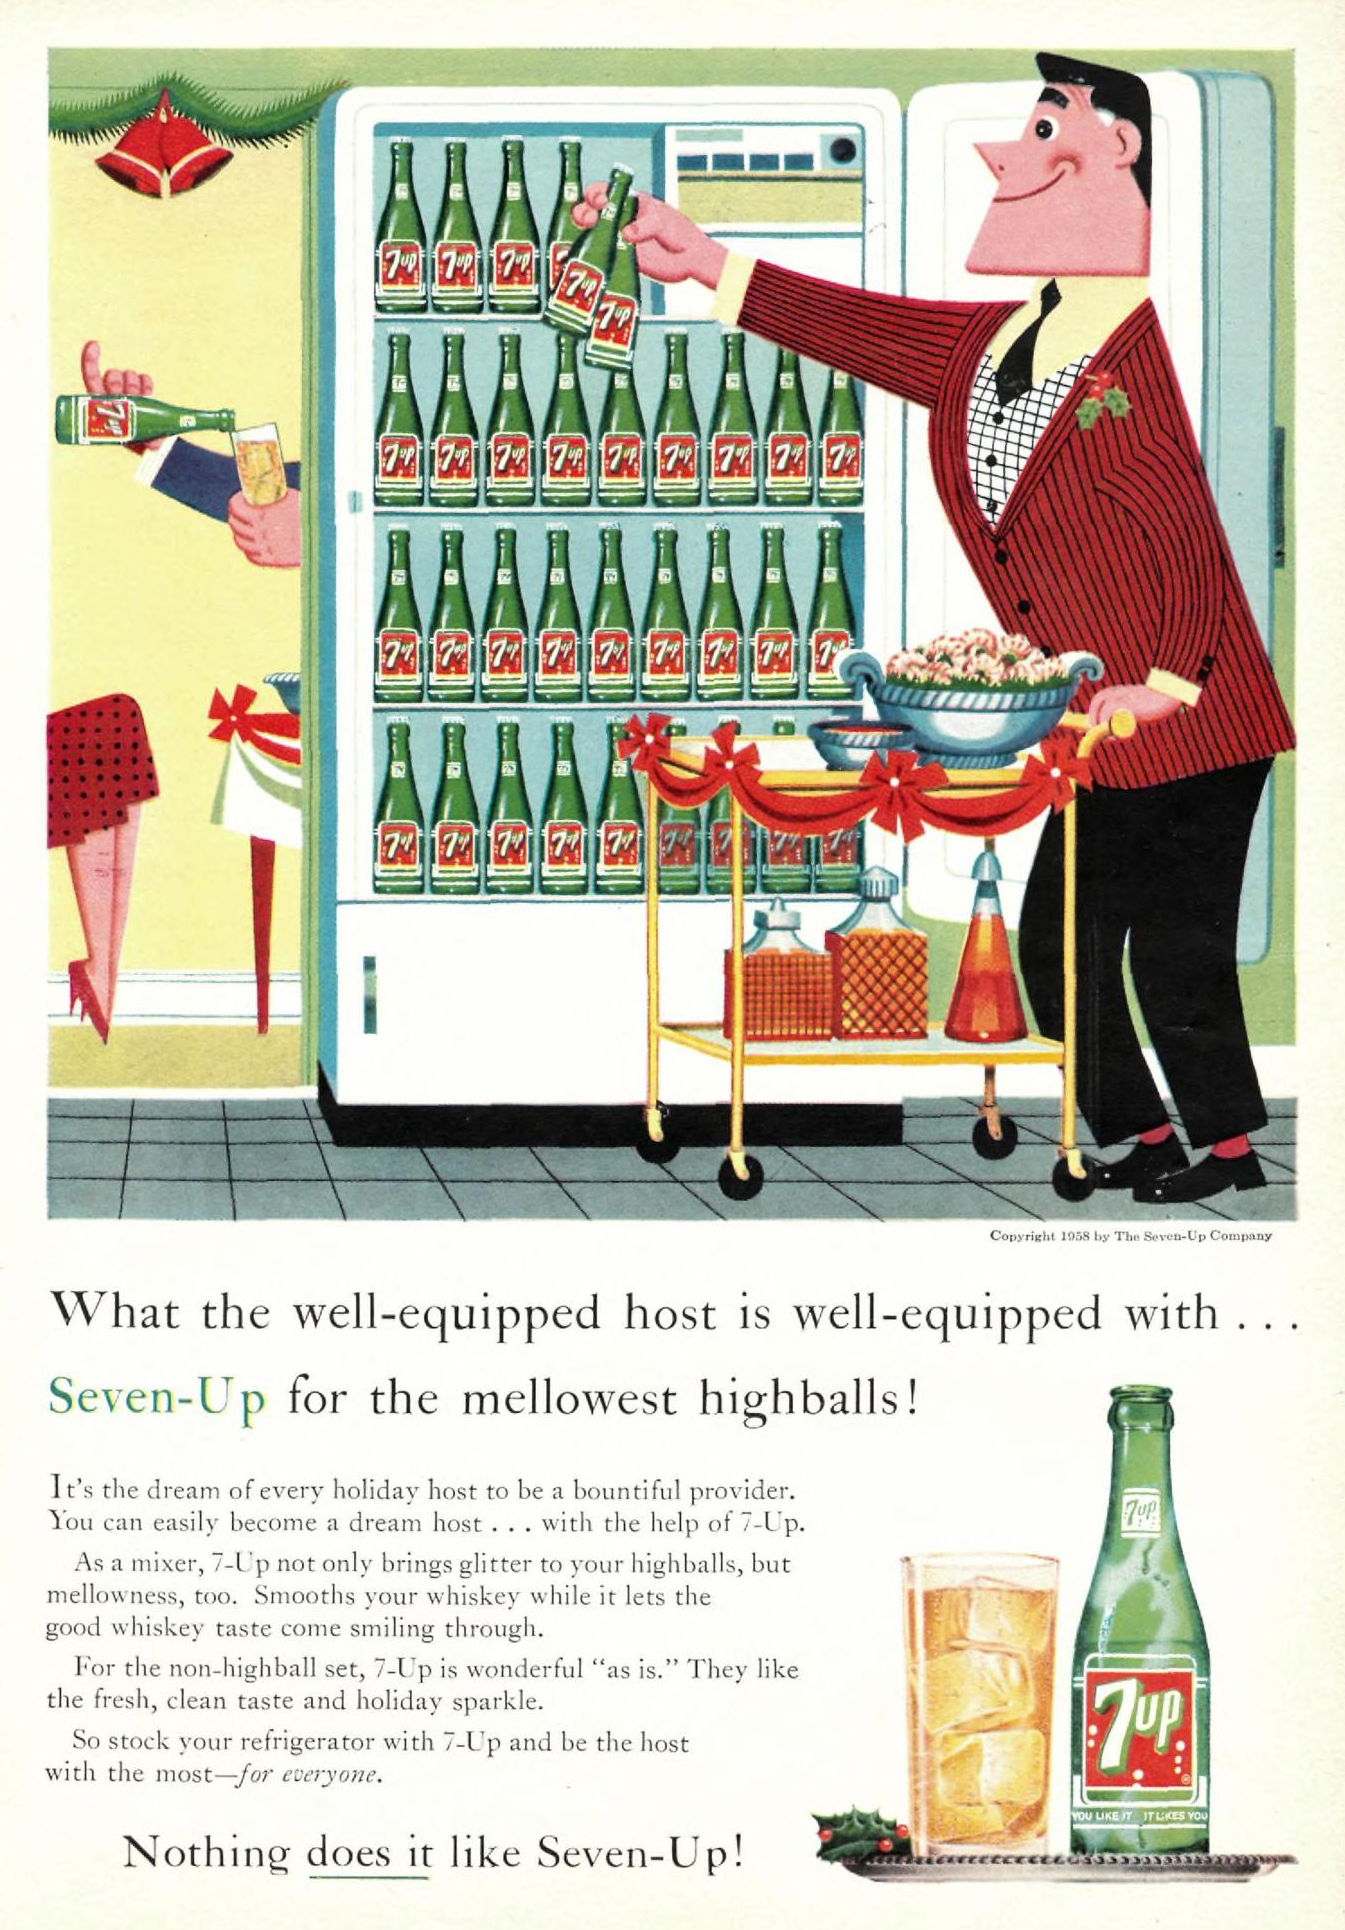 The Seven-Up Company - published in Sports Illustrated - December 22, 1958